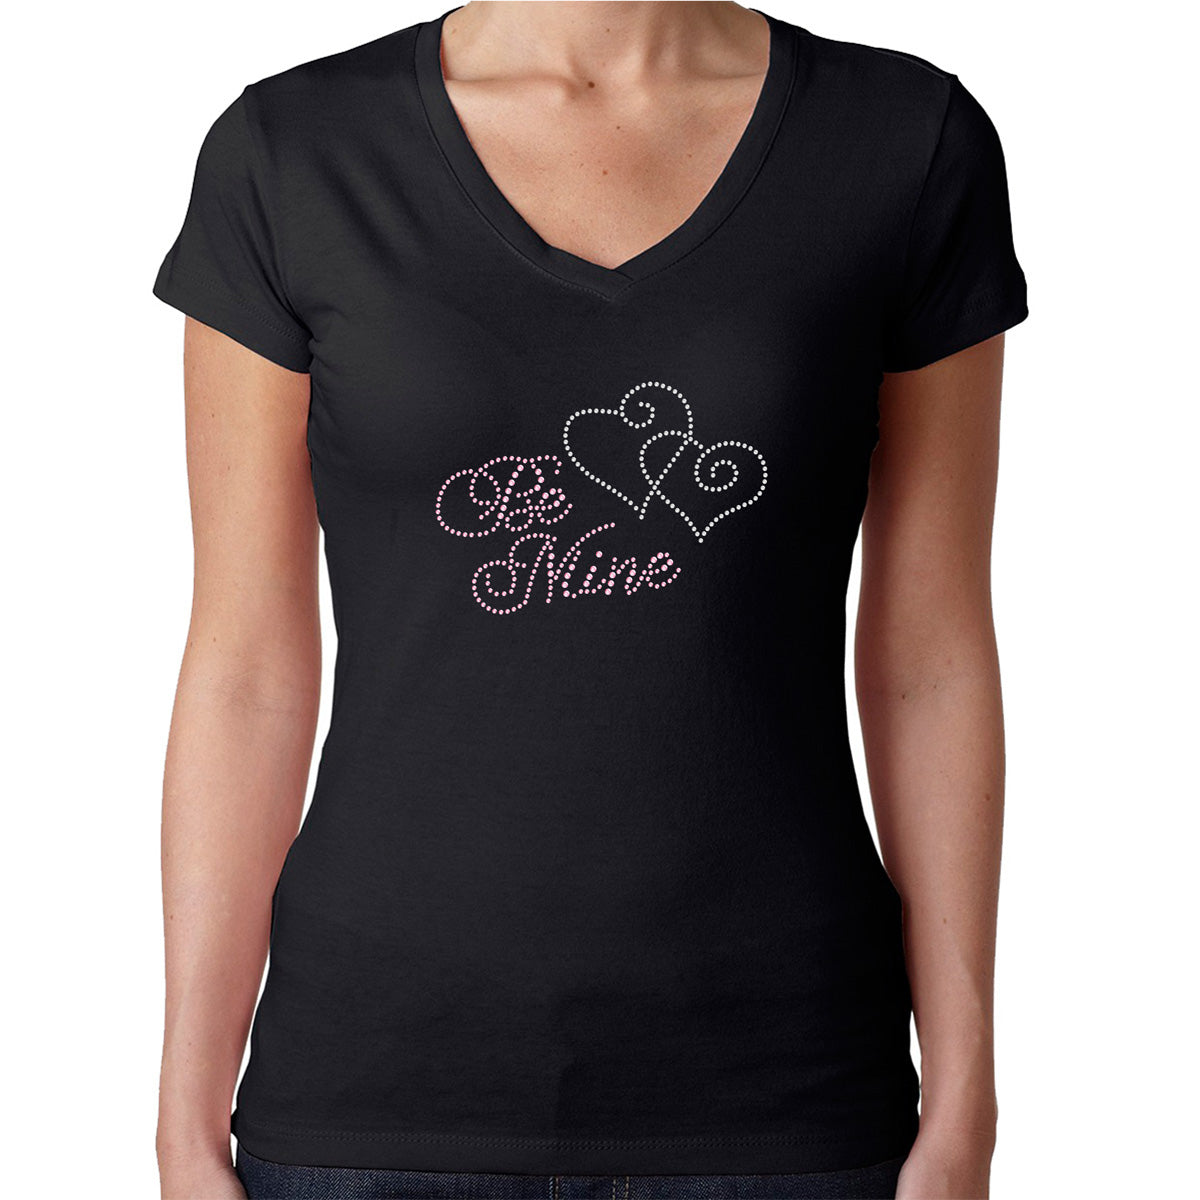 Womens T-Shirt Rhinestone Bling Black Fitted Tee Be Mine Valentines Hearts Pink